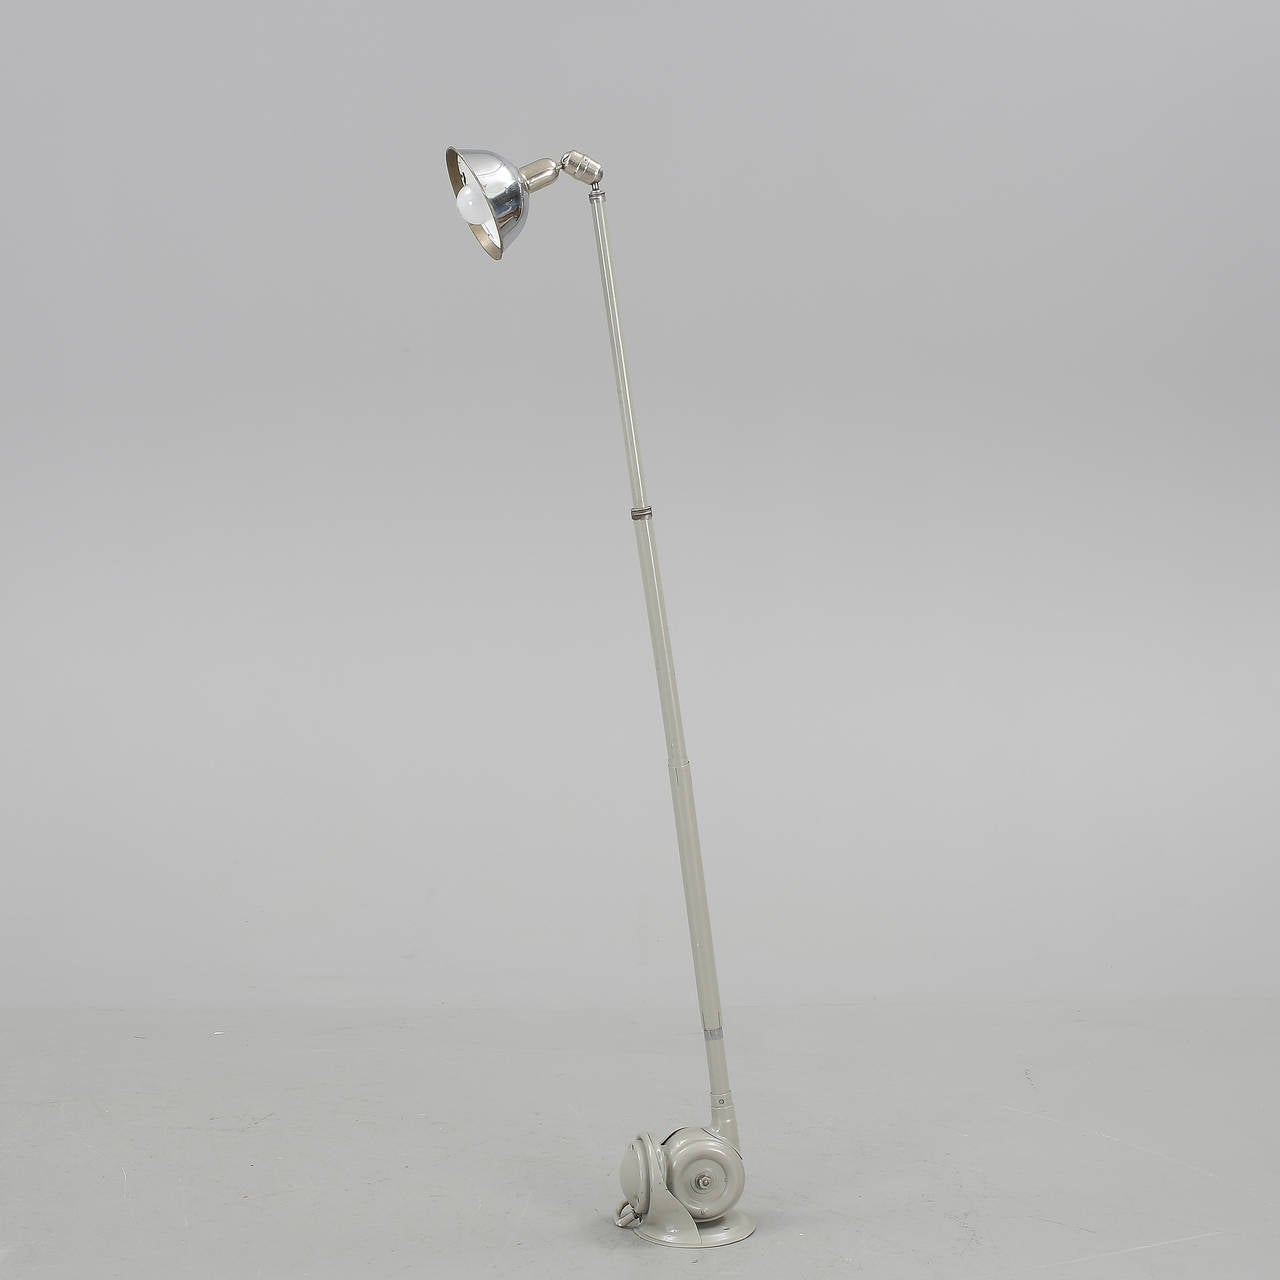 Telescopic lamp designed by Johan Petter Johansson.